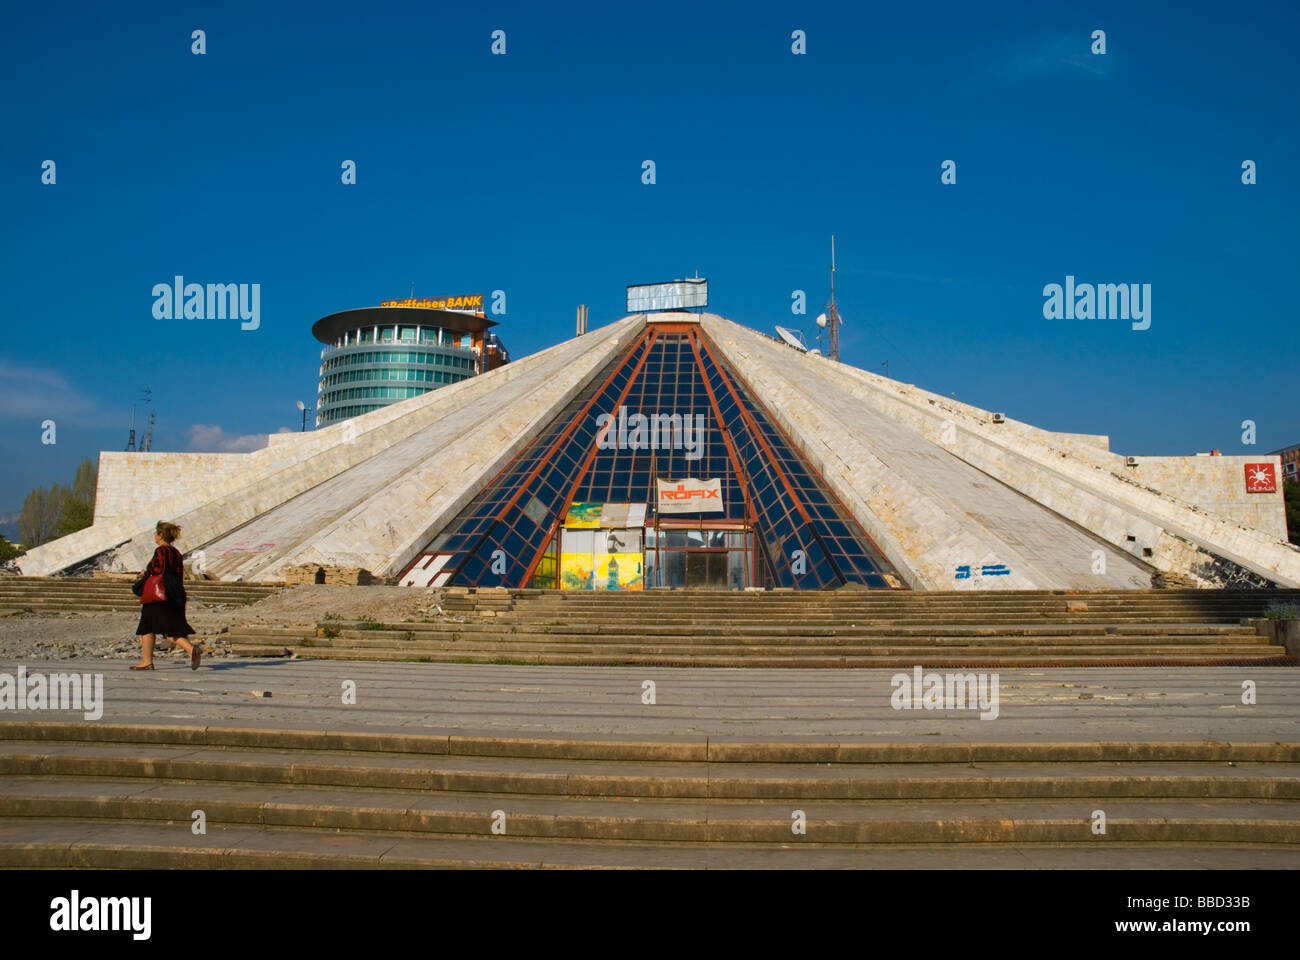 Pyramid that used to house former dicator Hoxhas museum is now in disuse in central Tirana Albania Europe - Stock Image